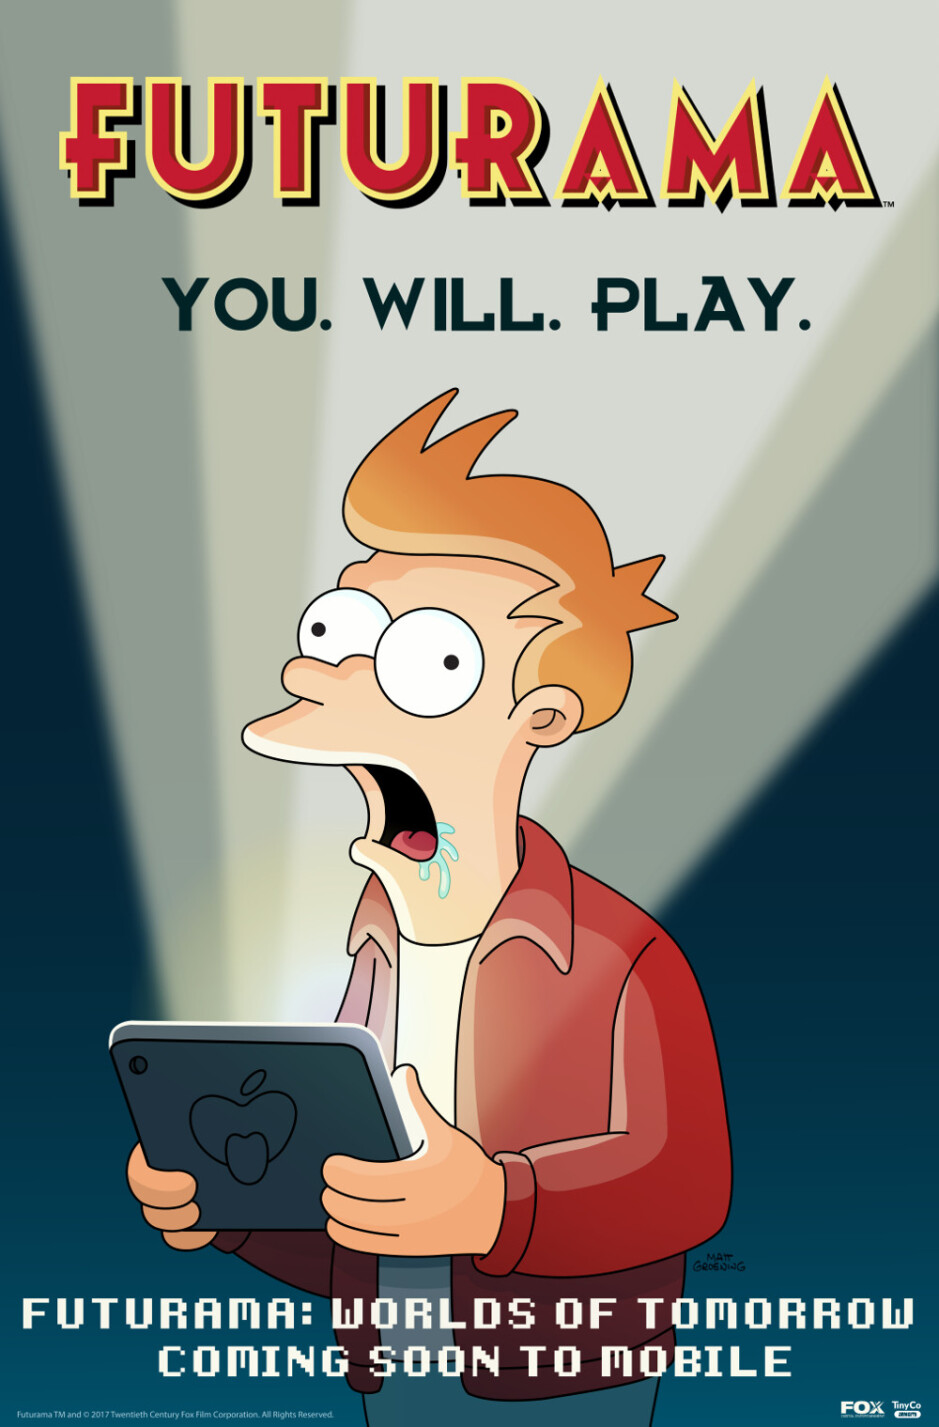 Futurama game World of Tomorrow coming soon to mobile devices